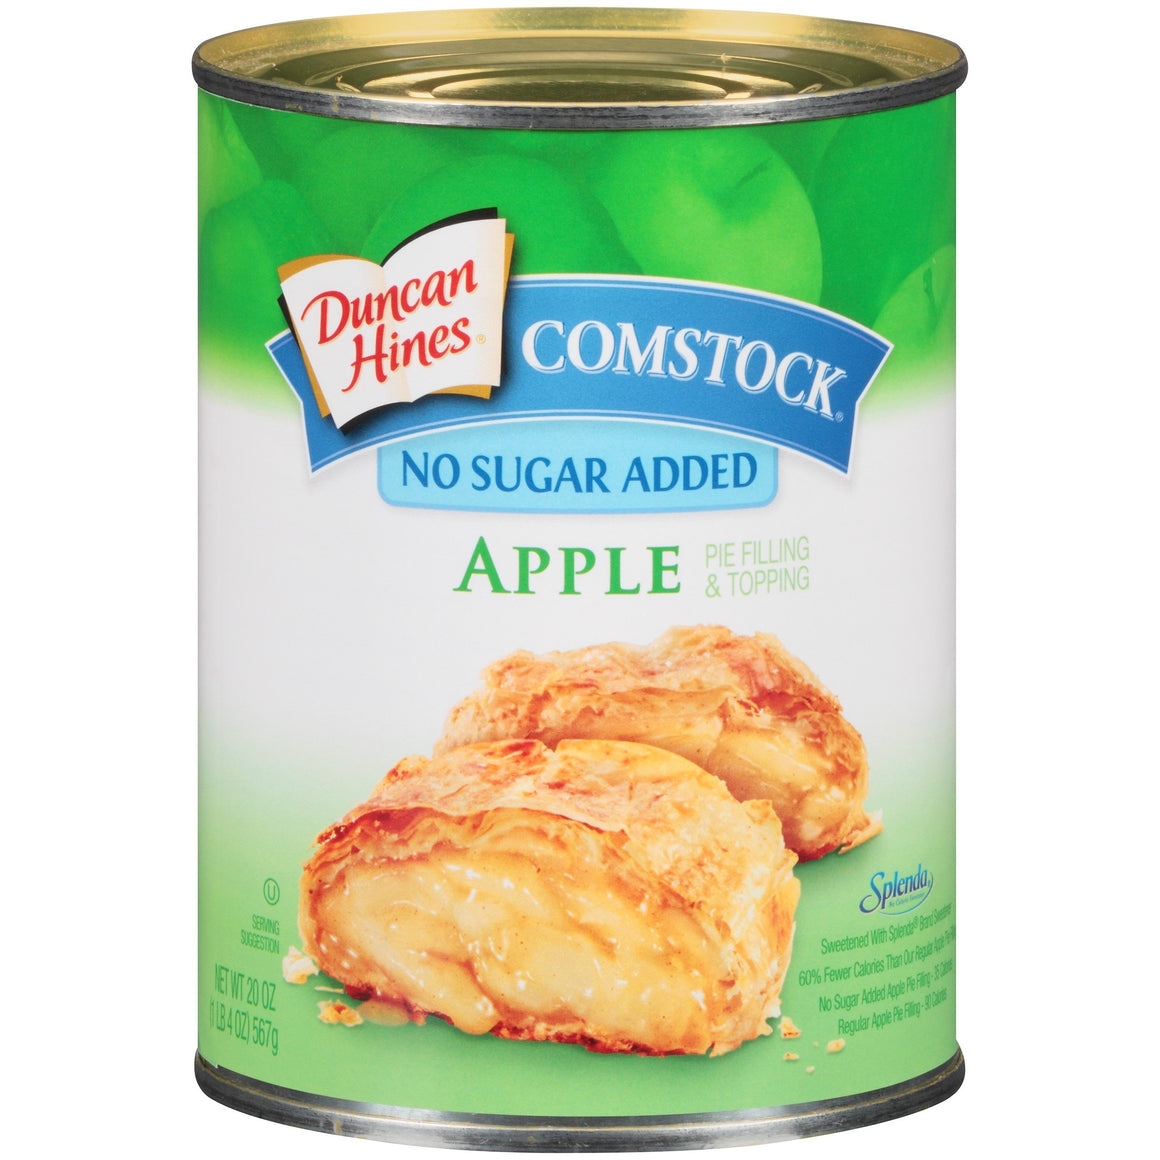 Duncan Hines Comstock - No Sugar Added Pie Filling and Topping - Apple - 20 oz